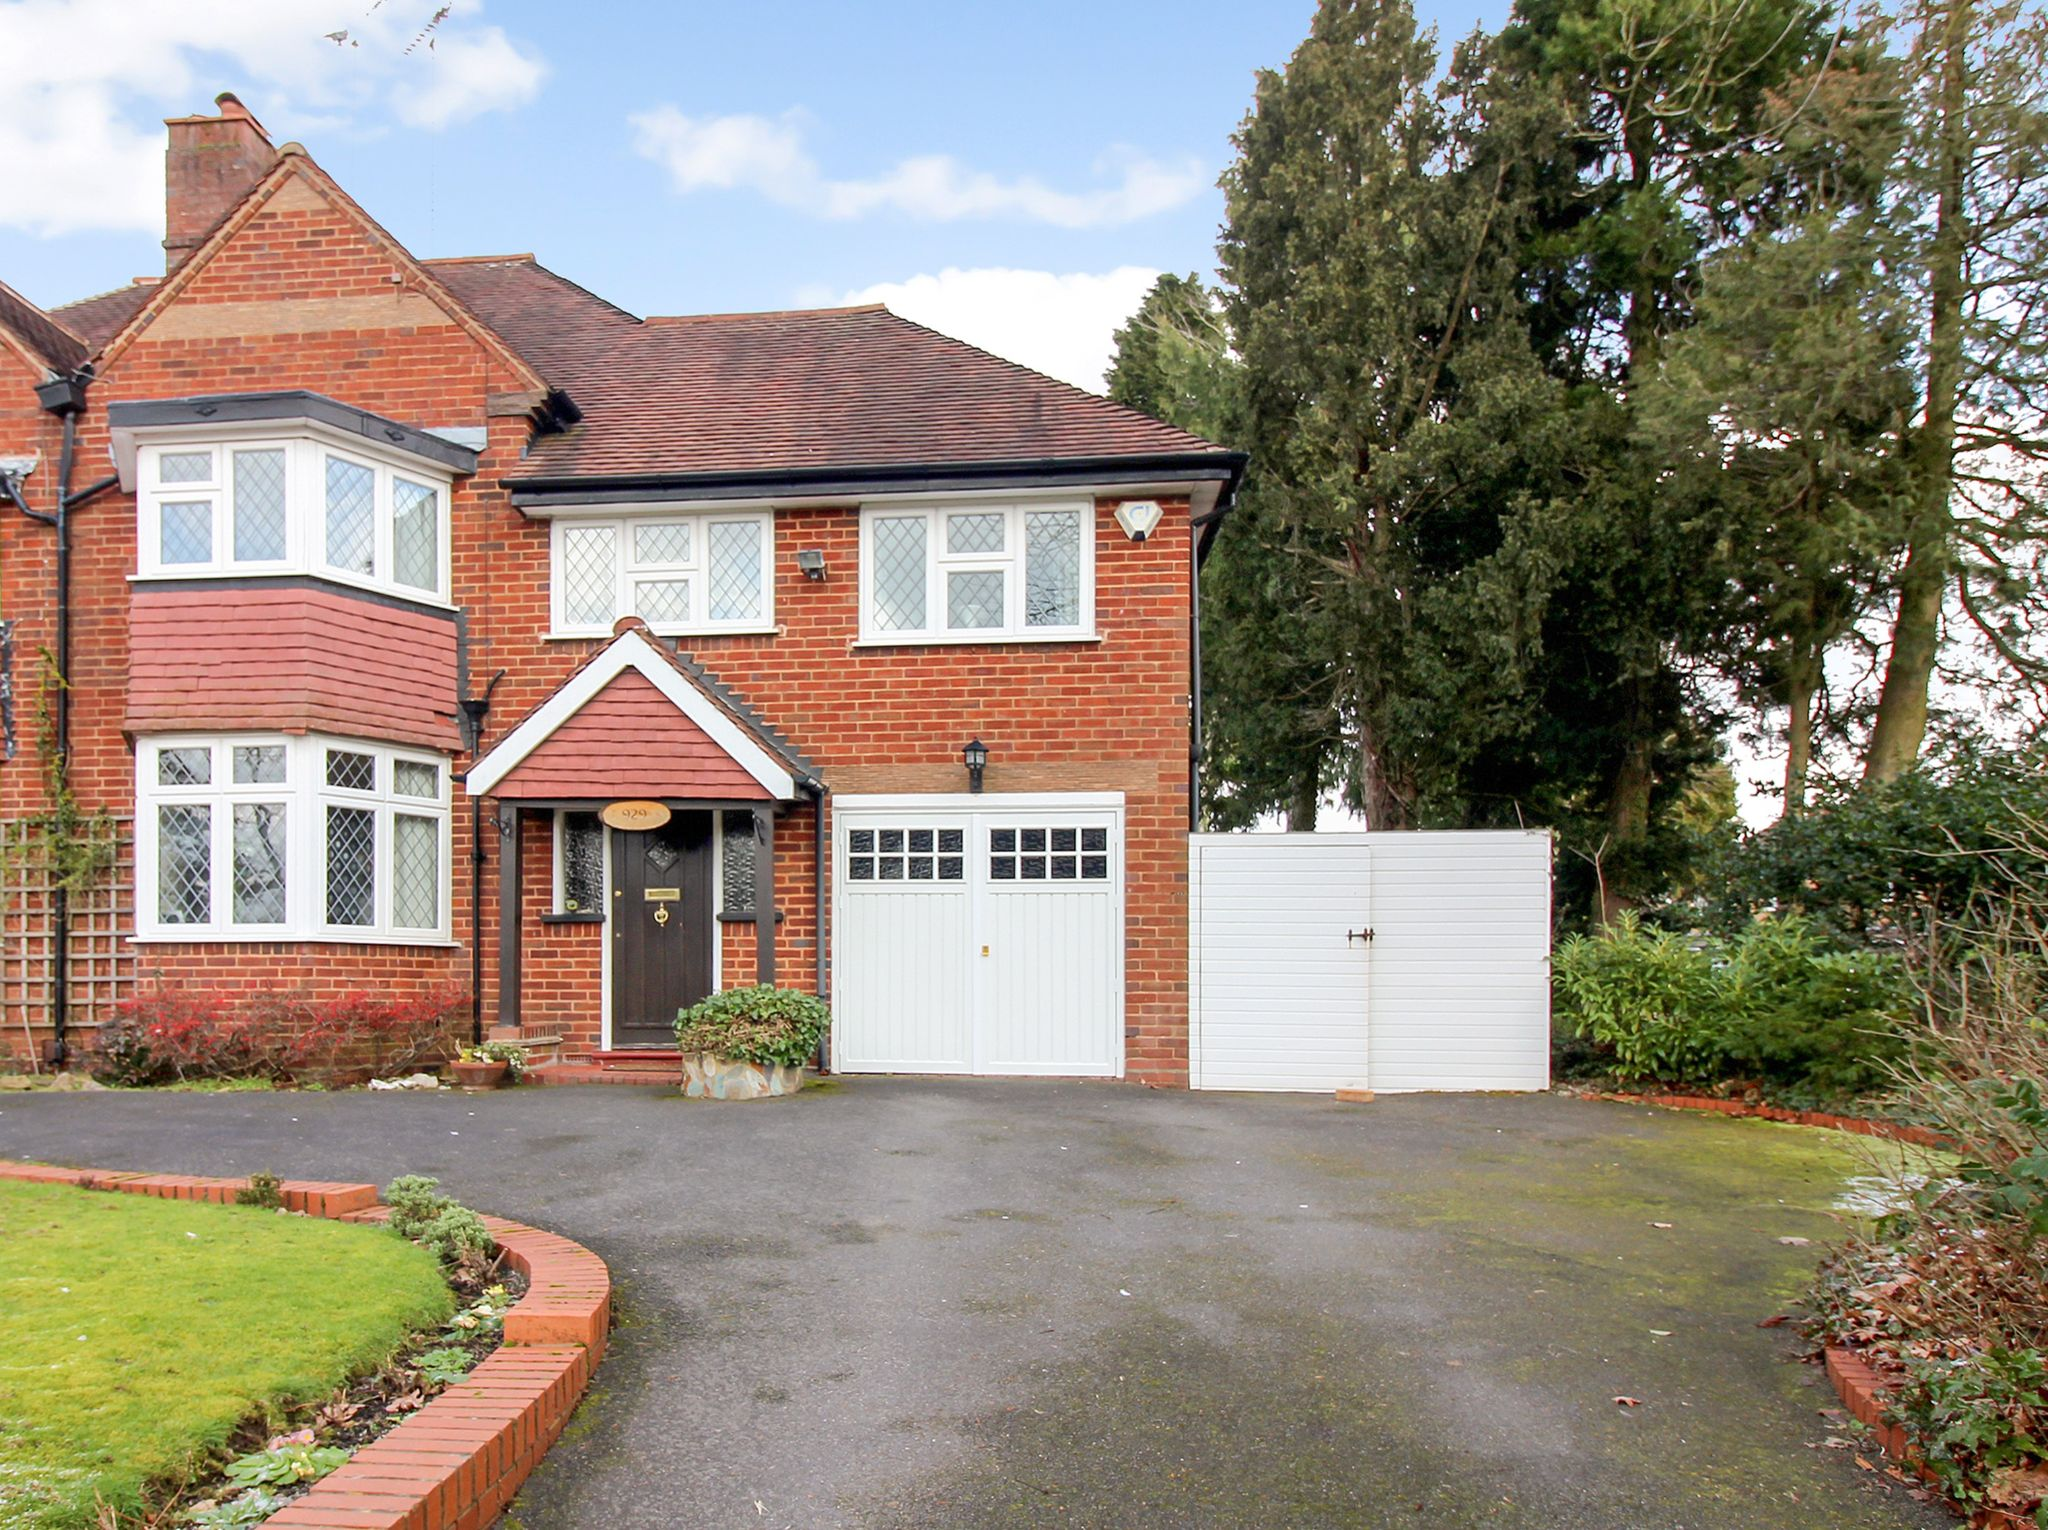 4 bedroom semi-detached house For Sale in Solihull - Photograph 1.